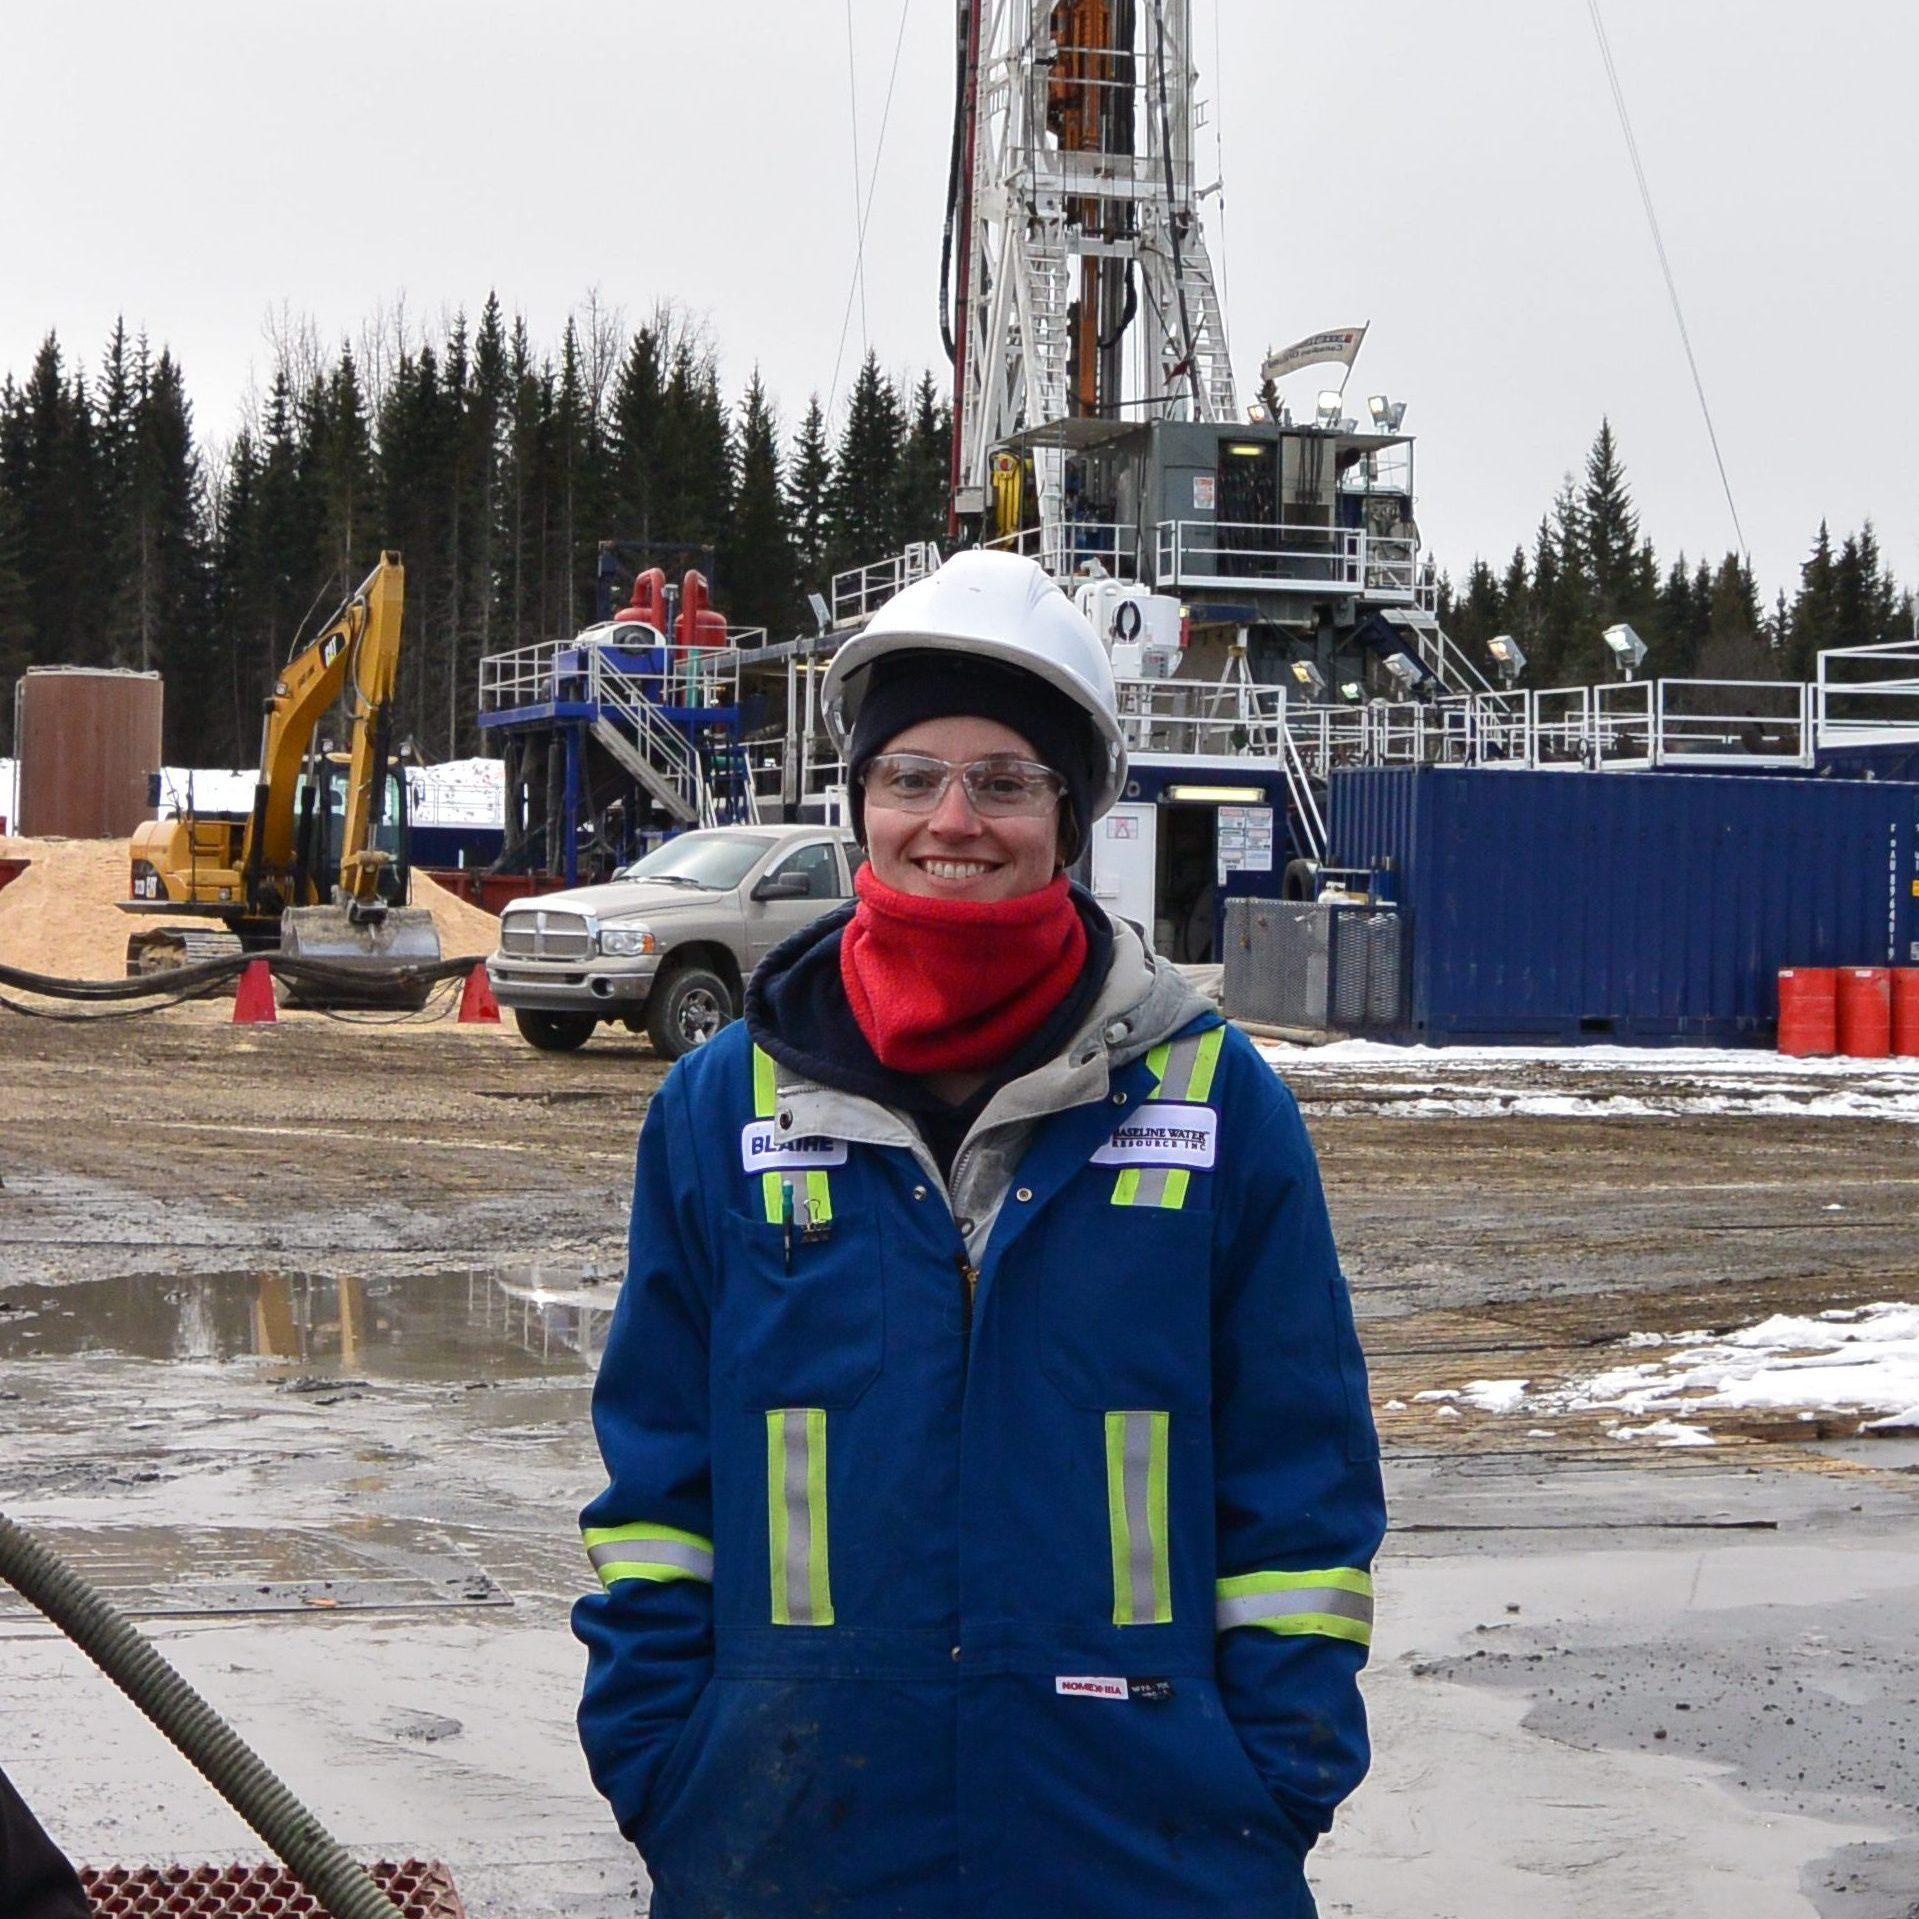 Person in front of rig